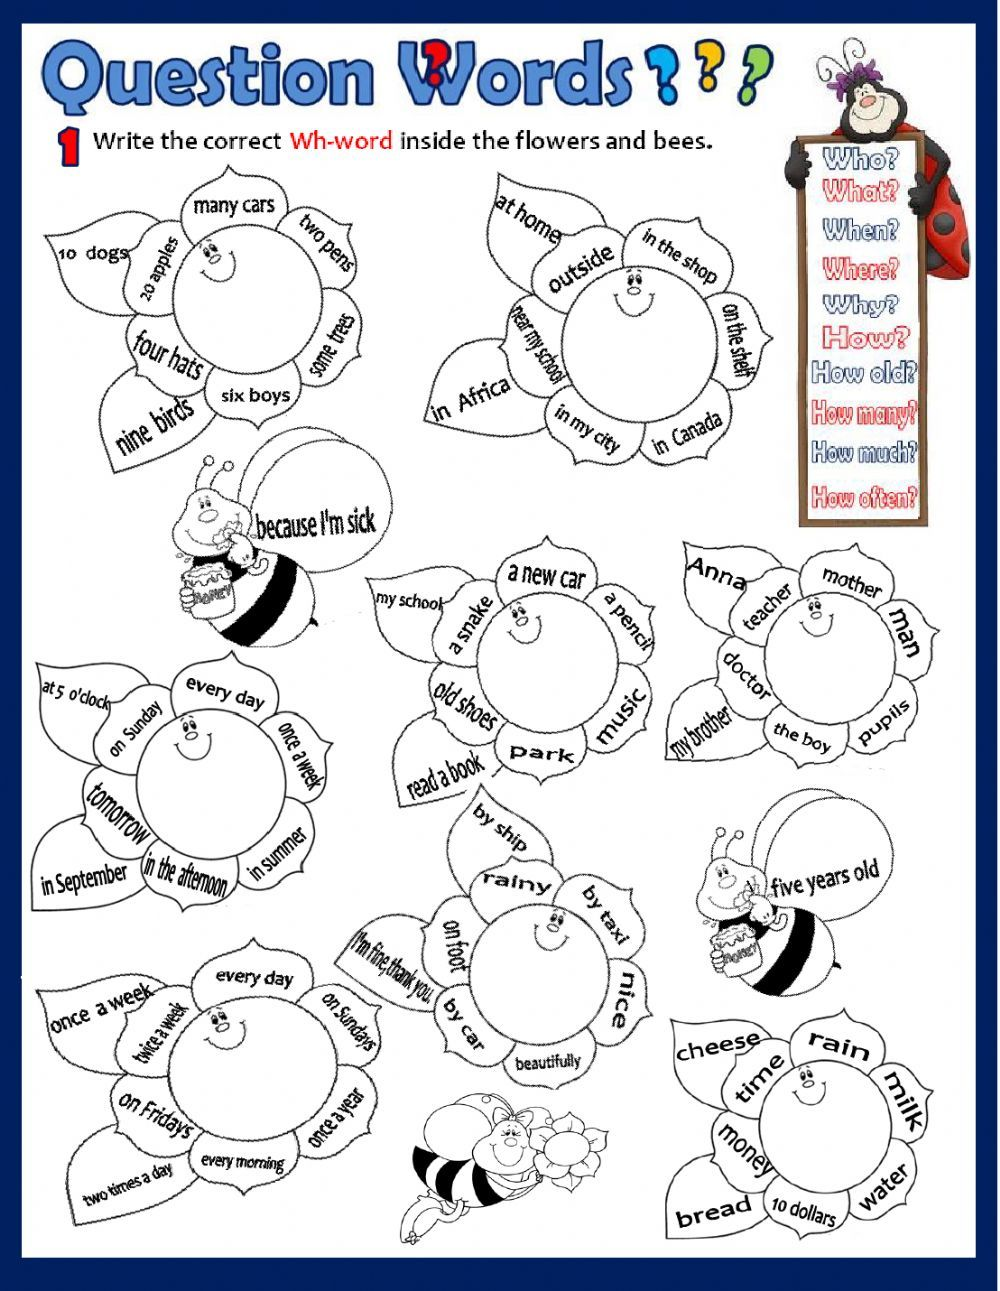 grammar interactive and downloadable worksheet. Check your answers ...